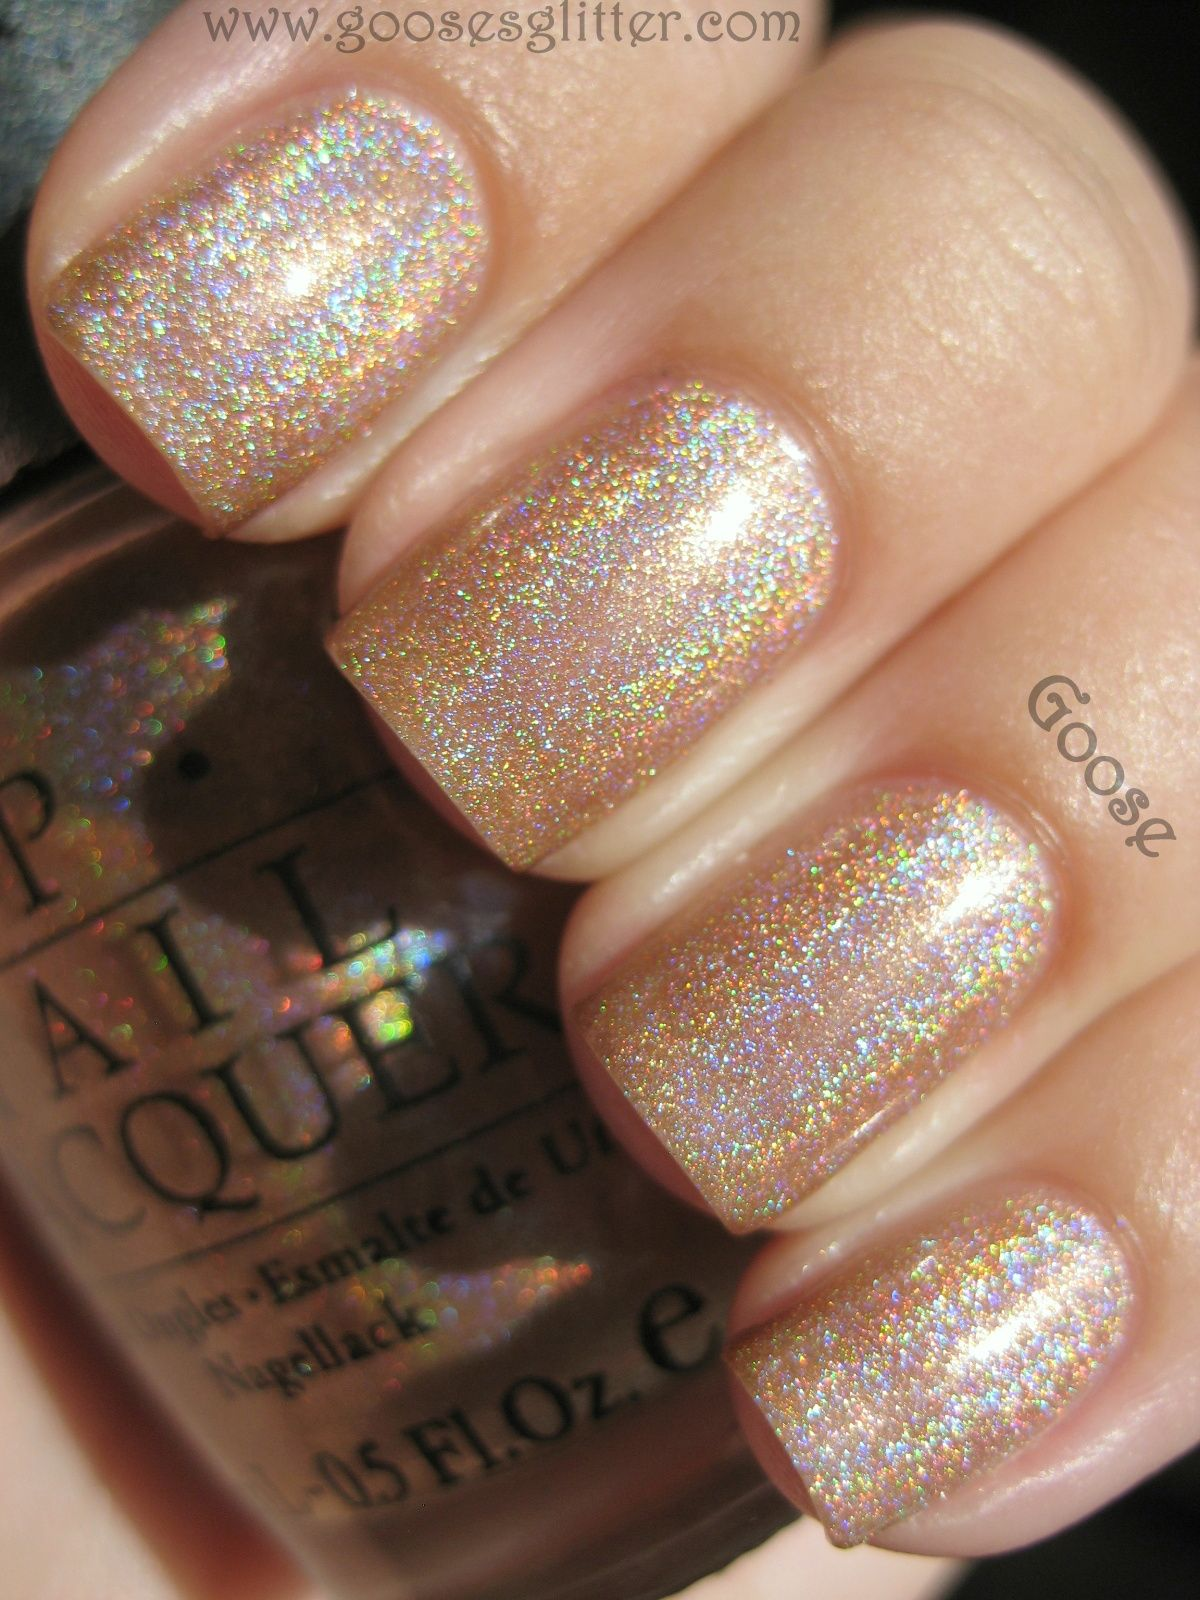 Goose S Glitter Opi Ds Design Swatches And Review